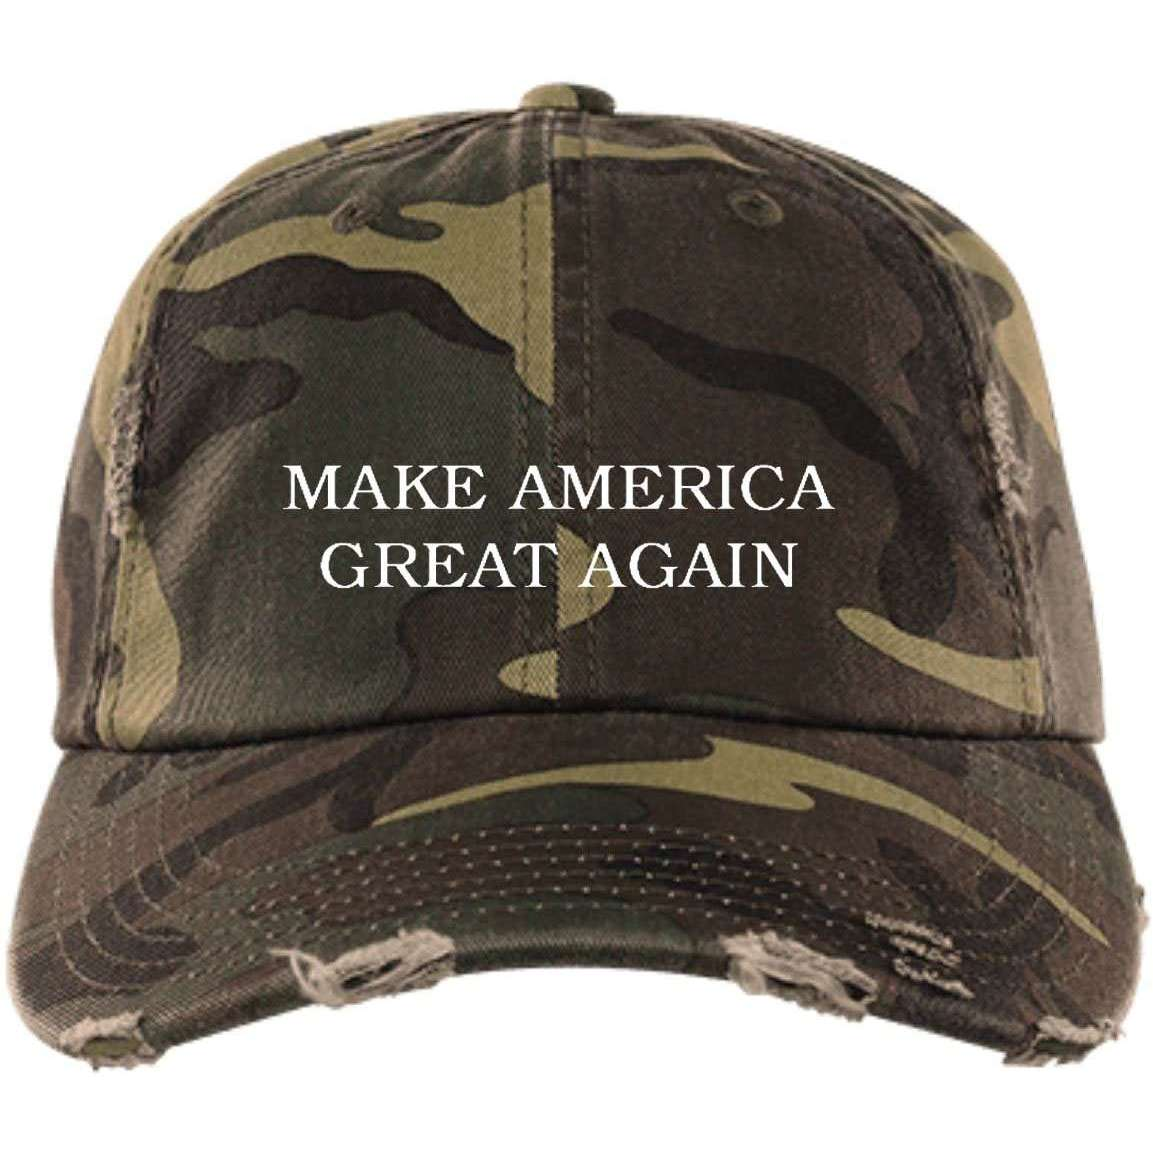 MAGA Distressed Dad Cap